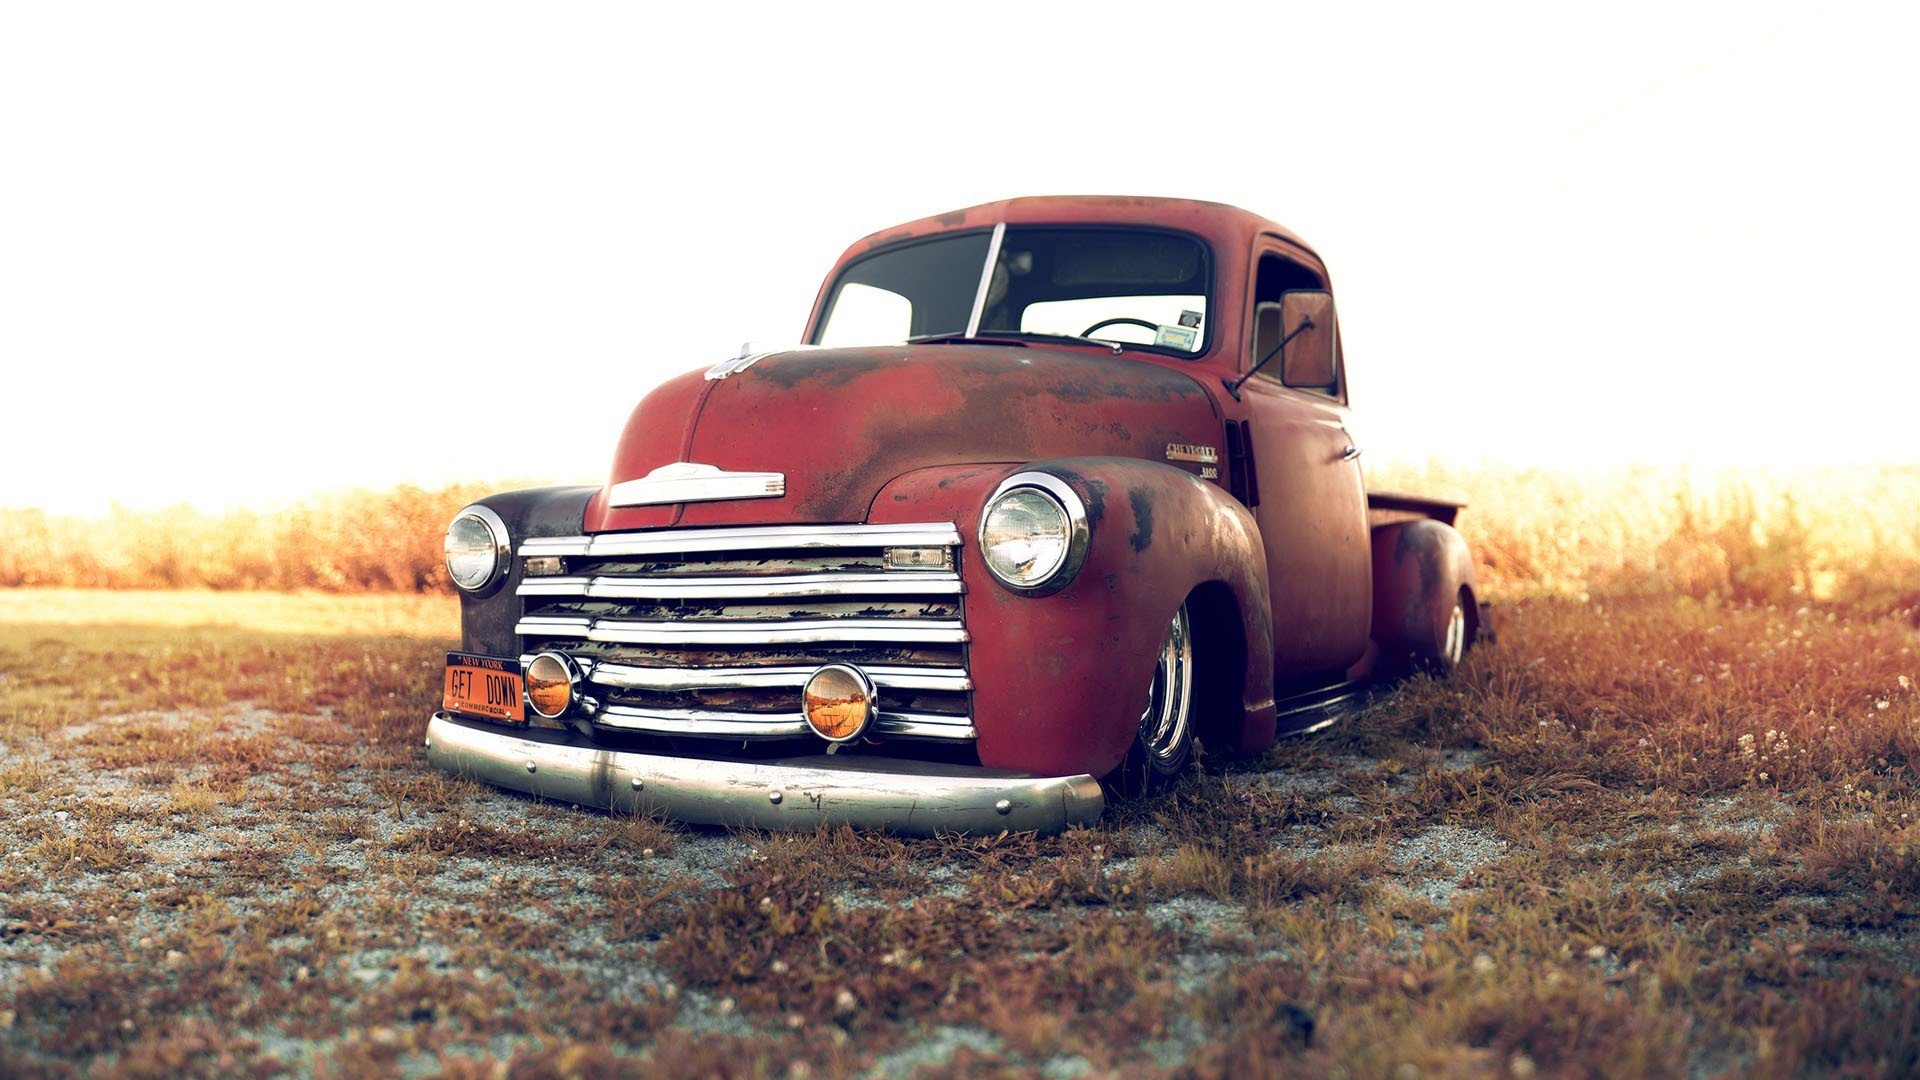 Free Car and Truck Wallpapers  WallpaperSafari